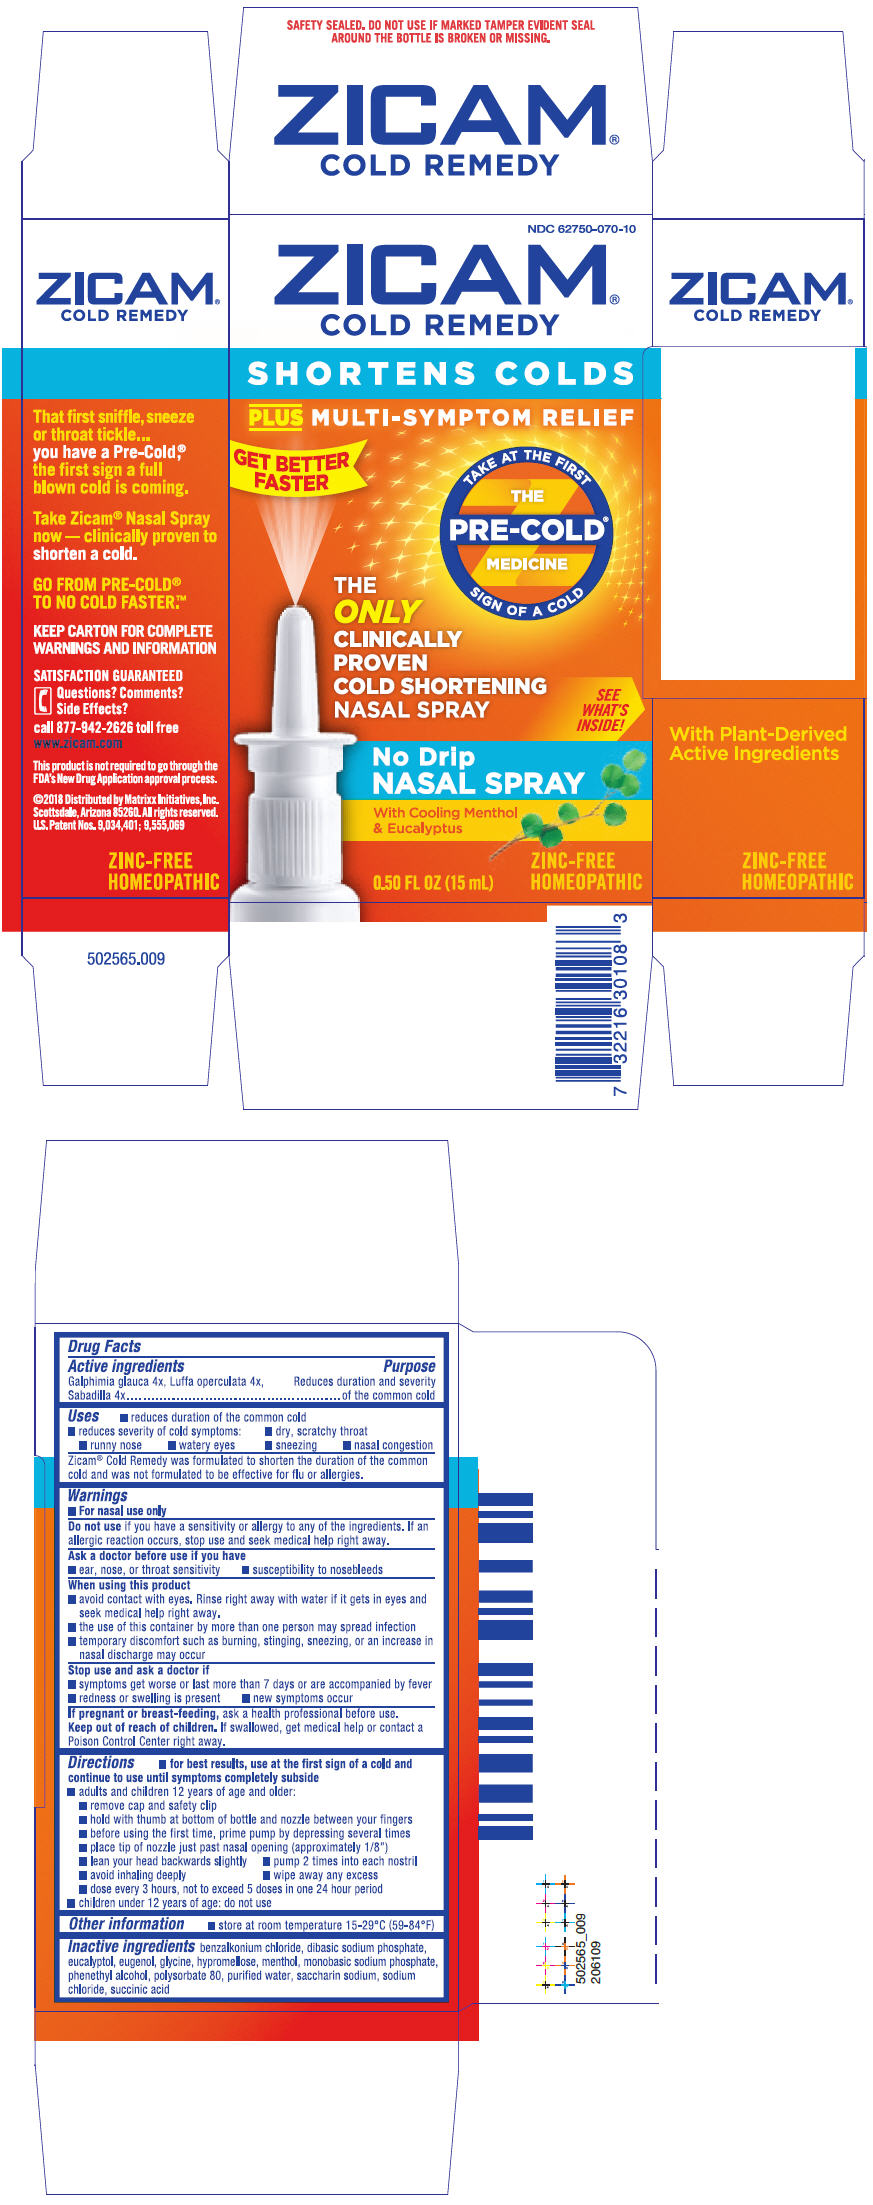 Zicam Cold Remedy (Galphimia Glauca Flowering Top, Luffa Operculata Fruit, And Schoenocaulon Officinale Seed) Spray [Matrixx Initiatives, Inc.]